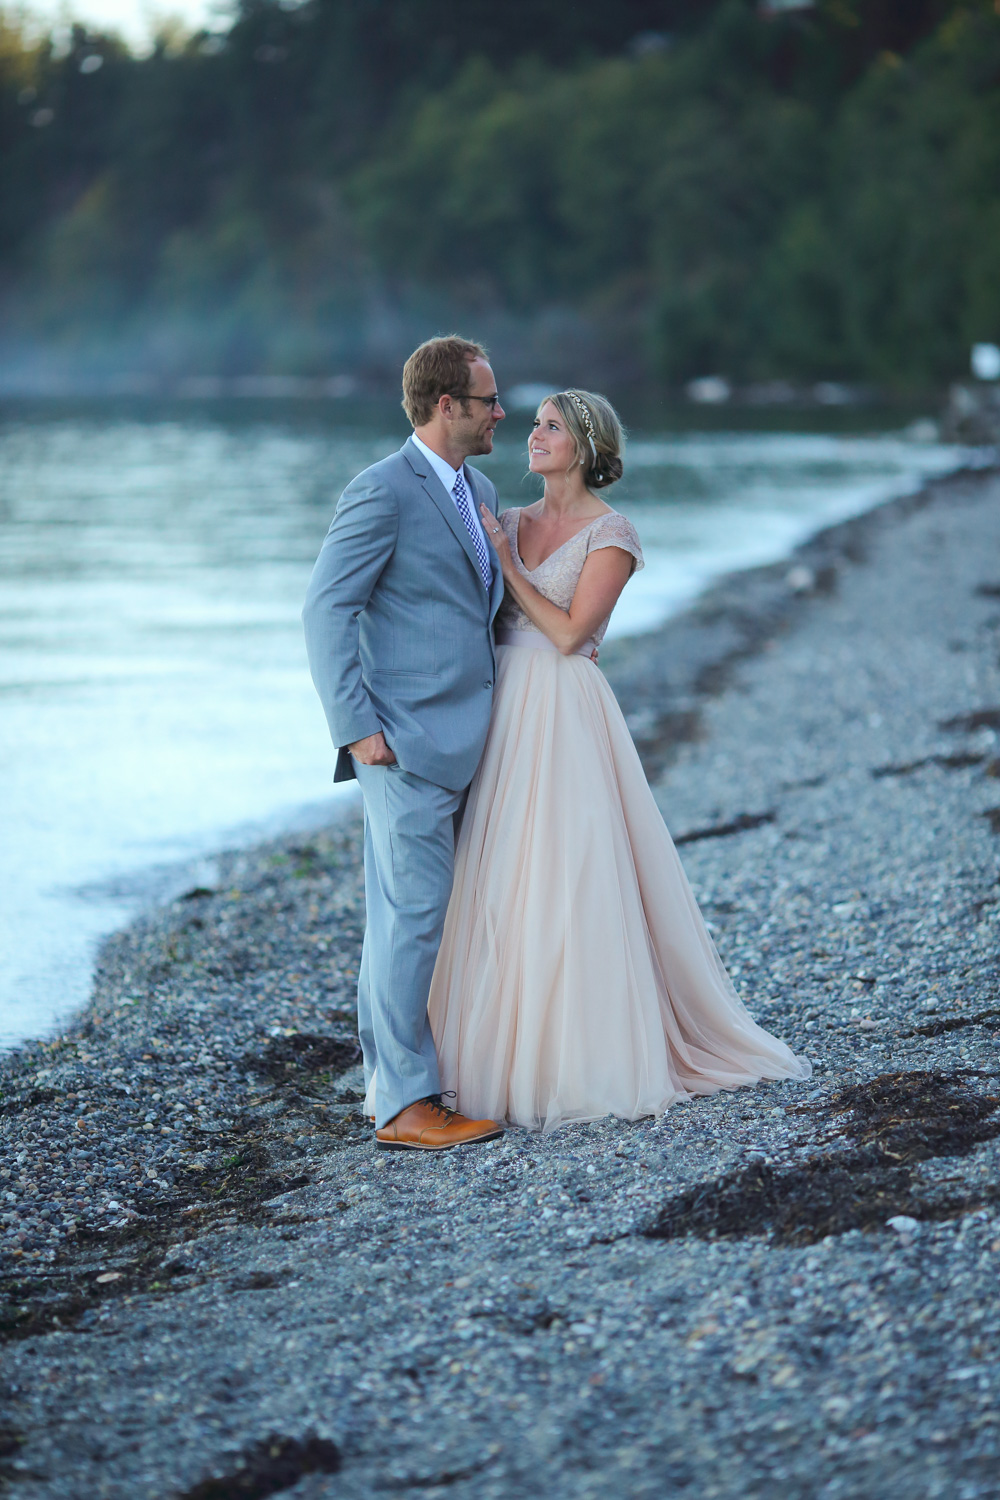 Wedding Guemes Island Resort Guemes Island Washington 32.jpg